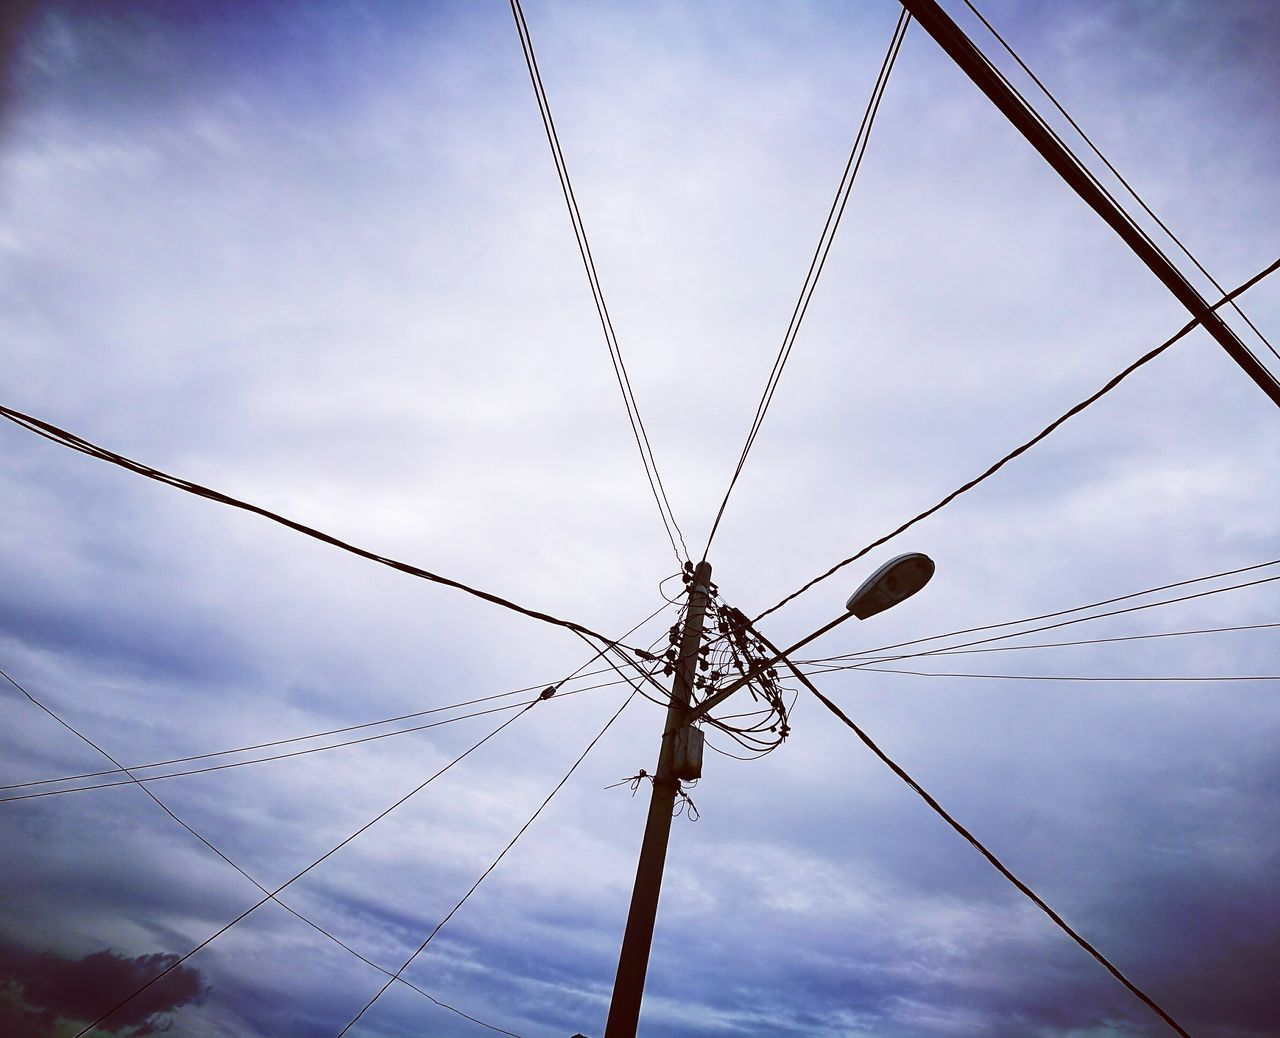 cable, connection, sky, power line, cloud - sky, low angle view, power supply, electricity, day, outdoors, fuel and power generation, technology, no people, complexity, telephone line, animal themes